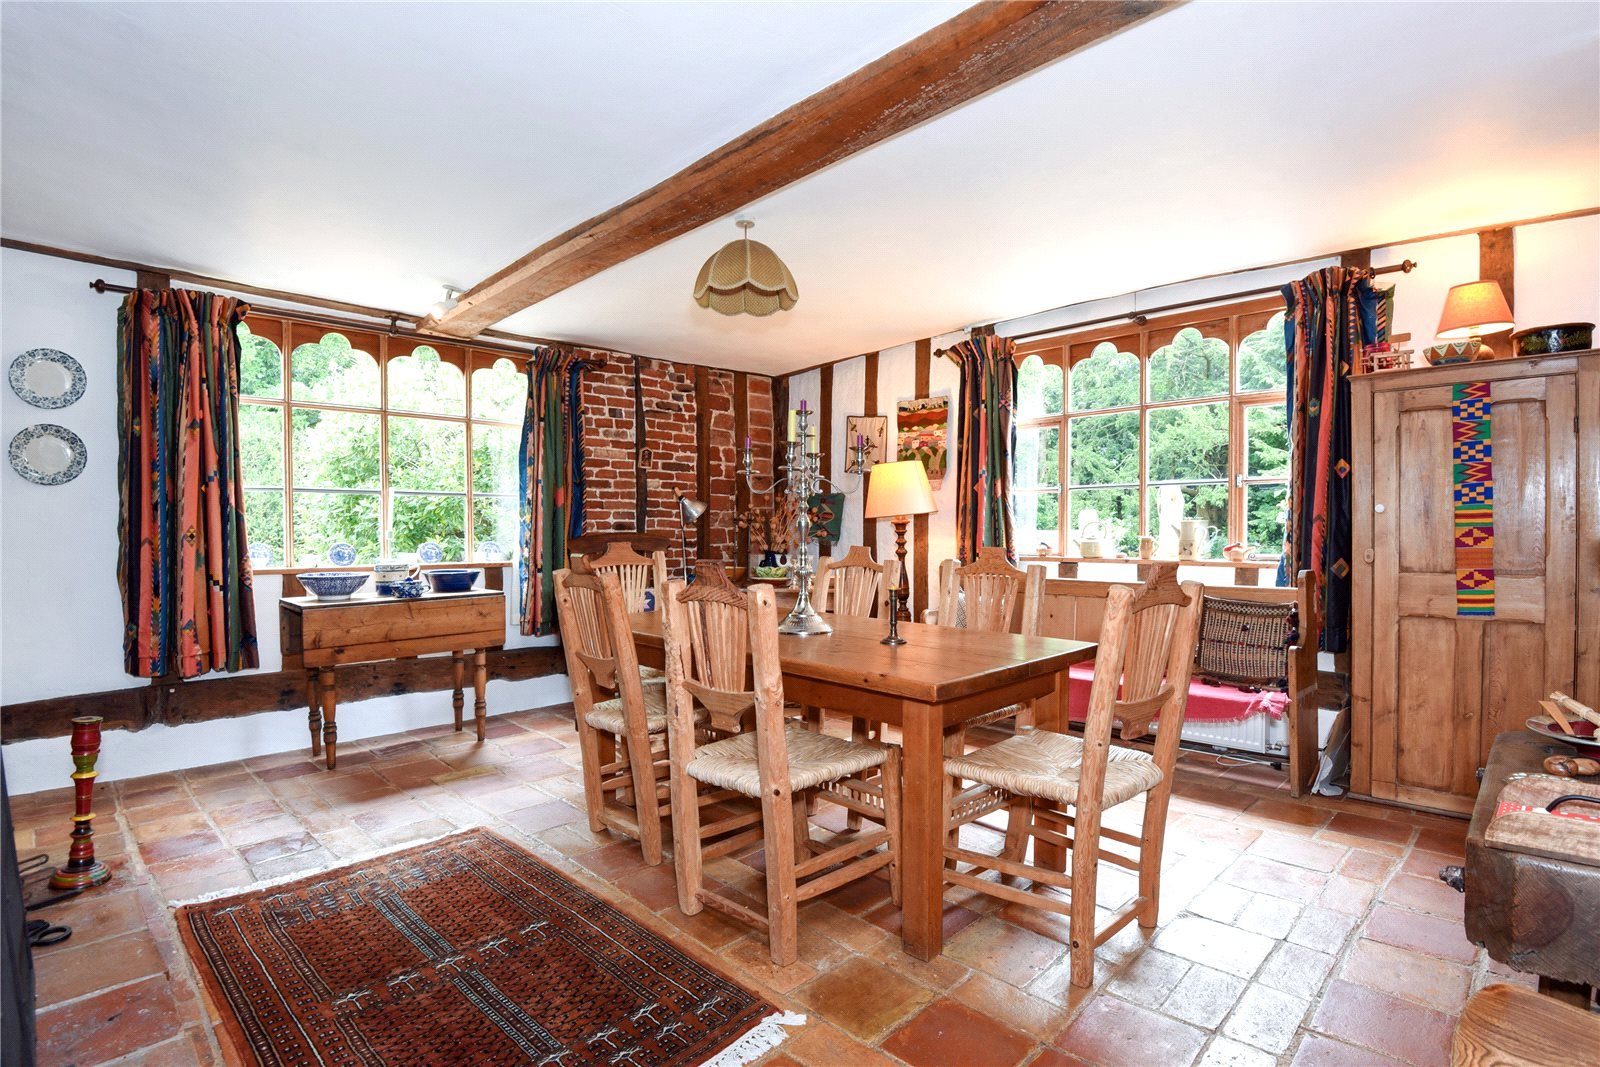 Additional photo for property listing at Snow Street, Roydon, Diss, Norfolk, IP22 Diss, Inglaterra